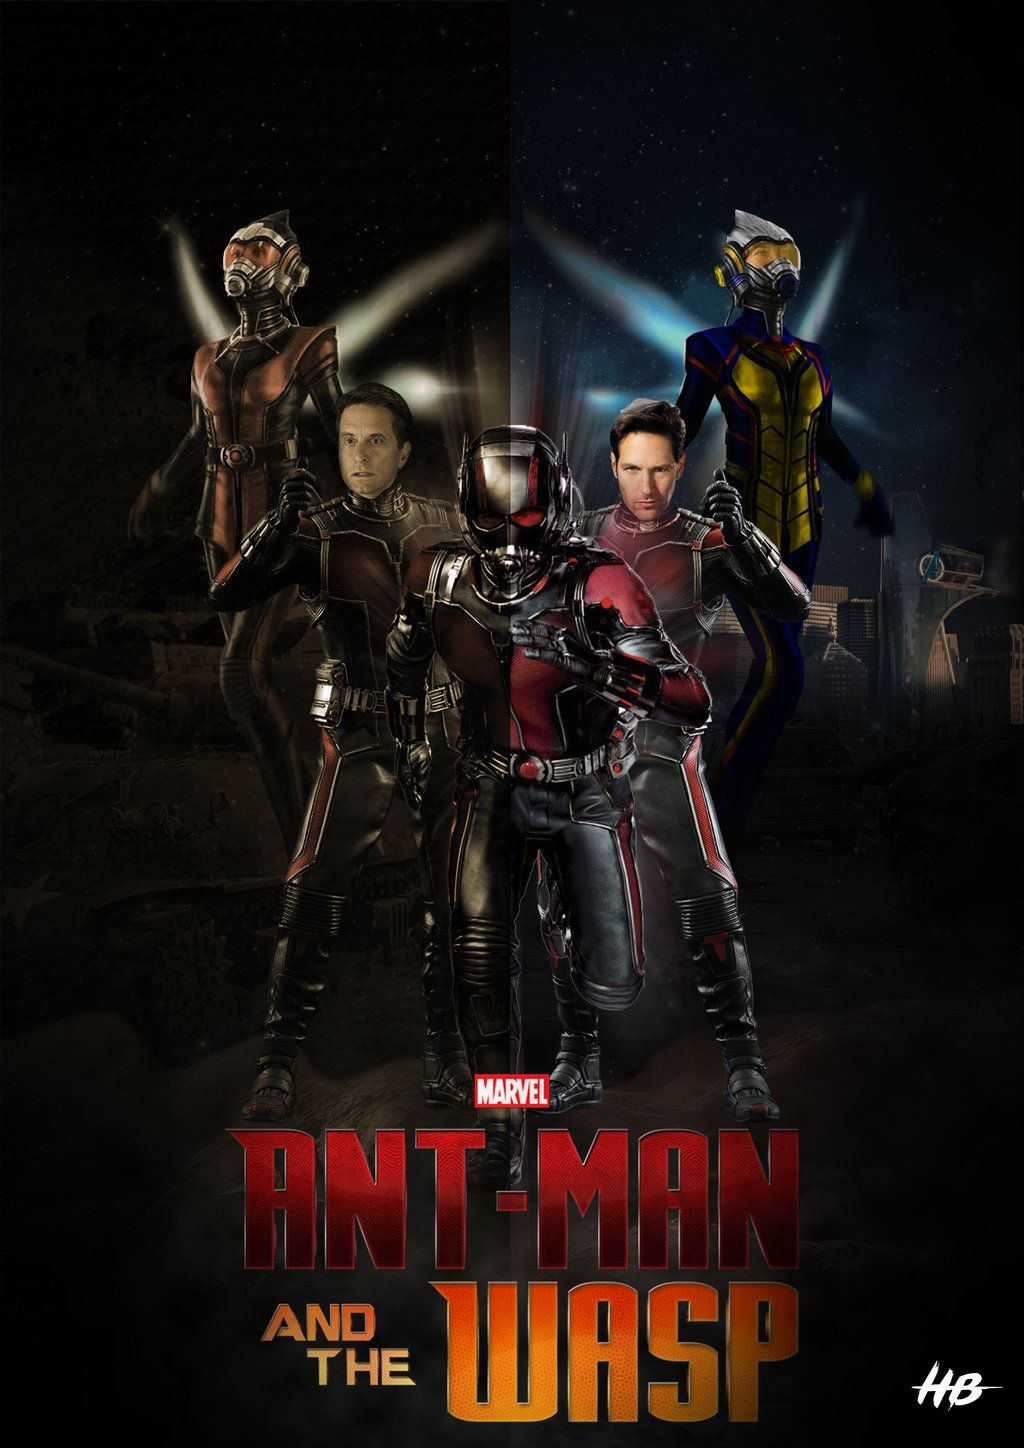 ant-man-y-the-wasp-ant-man-y-la-avispa-poster-by-hemison